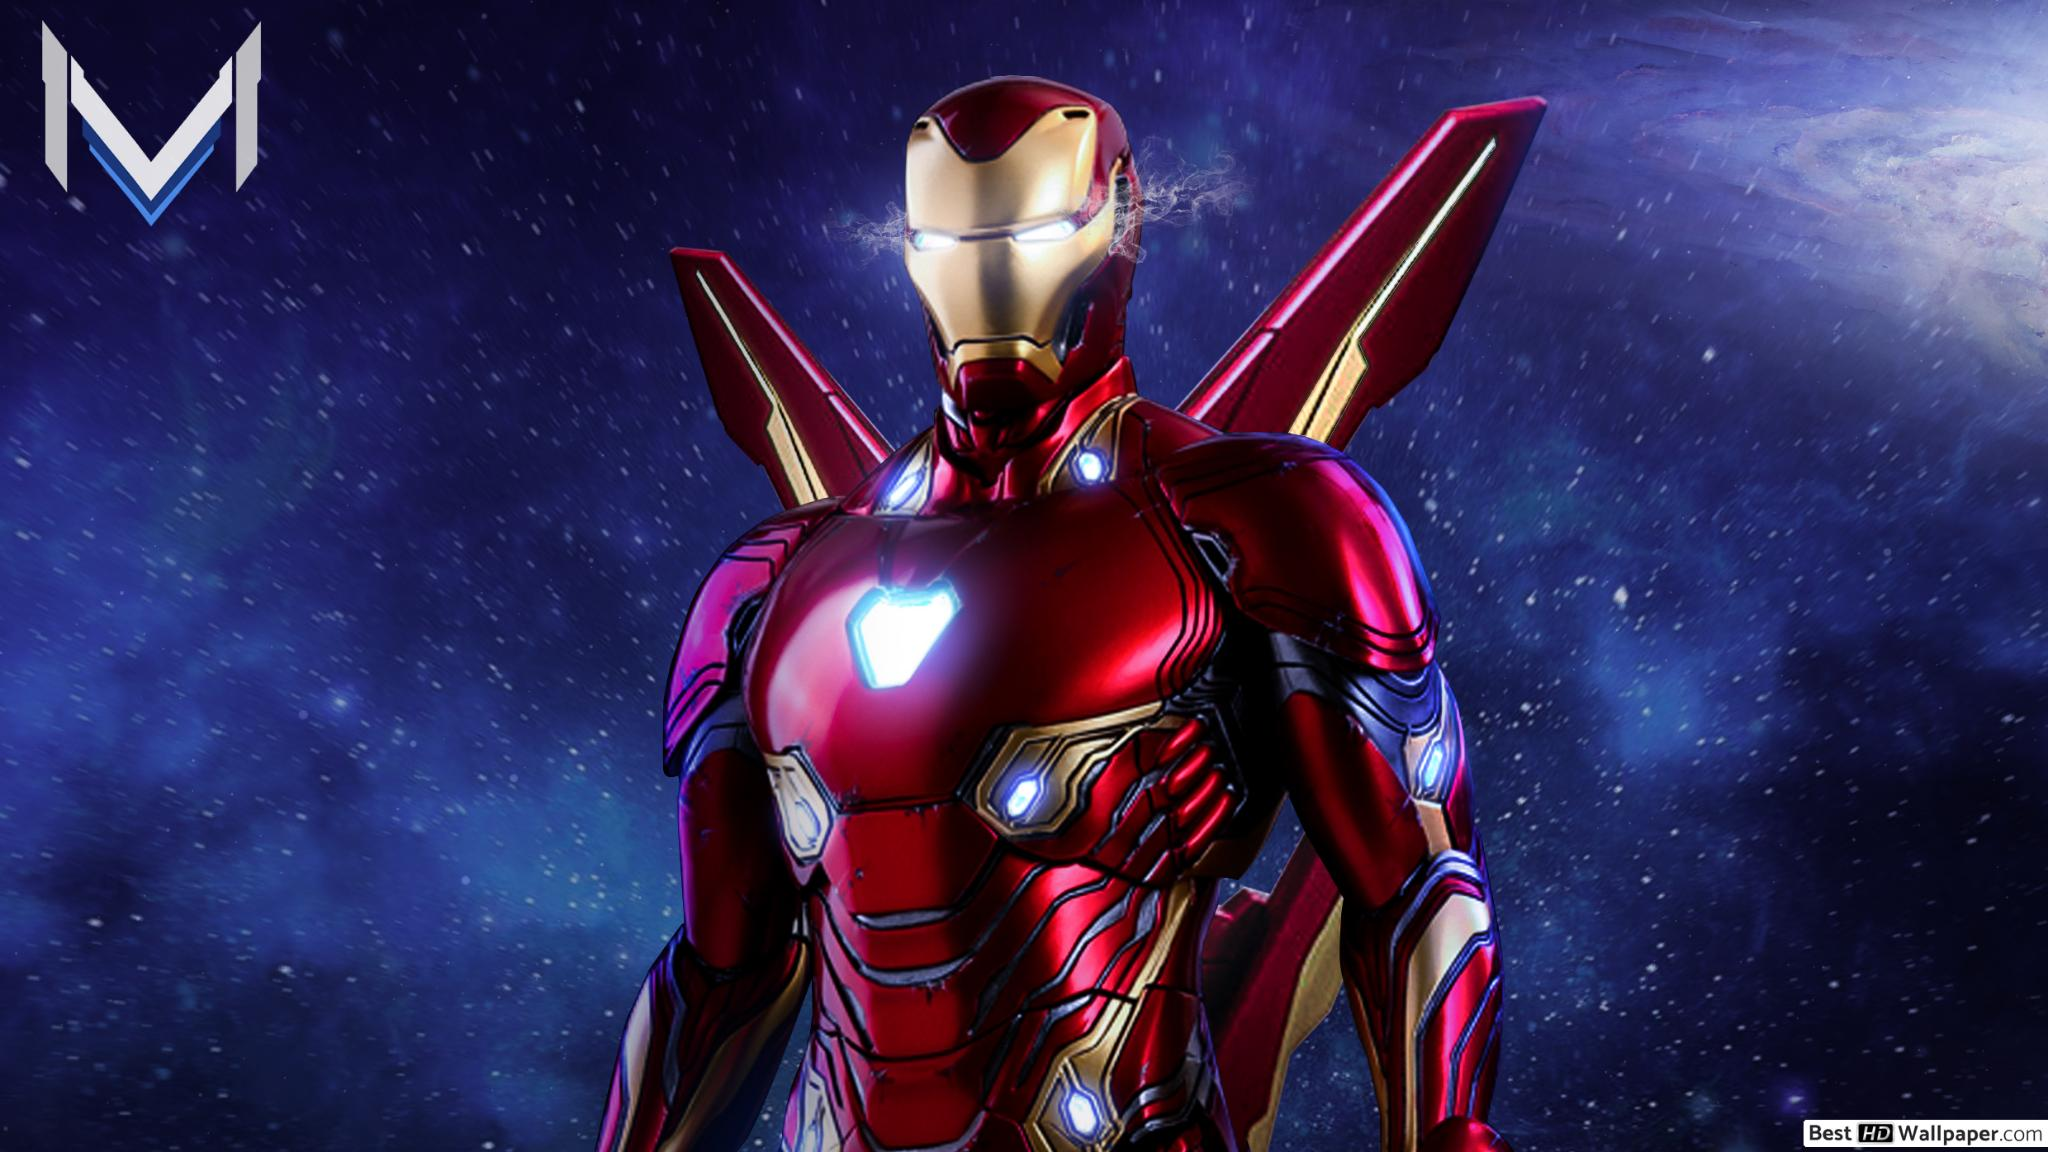 Iron Man Endgame Hd Wallpapers Top Free Iron Man Endgame